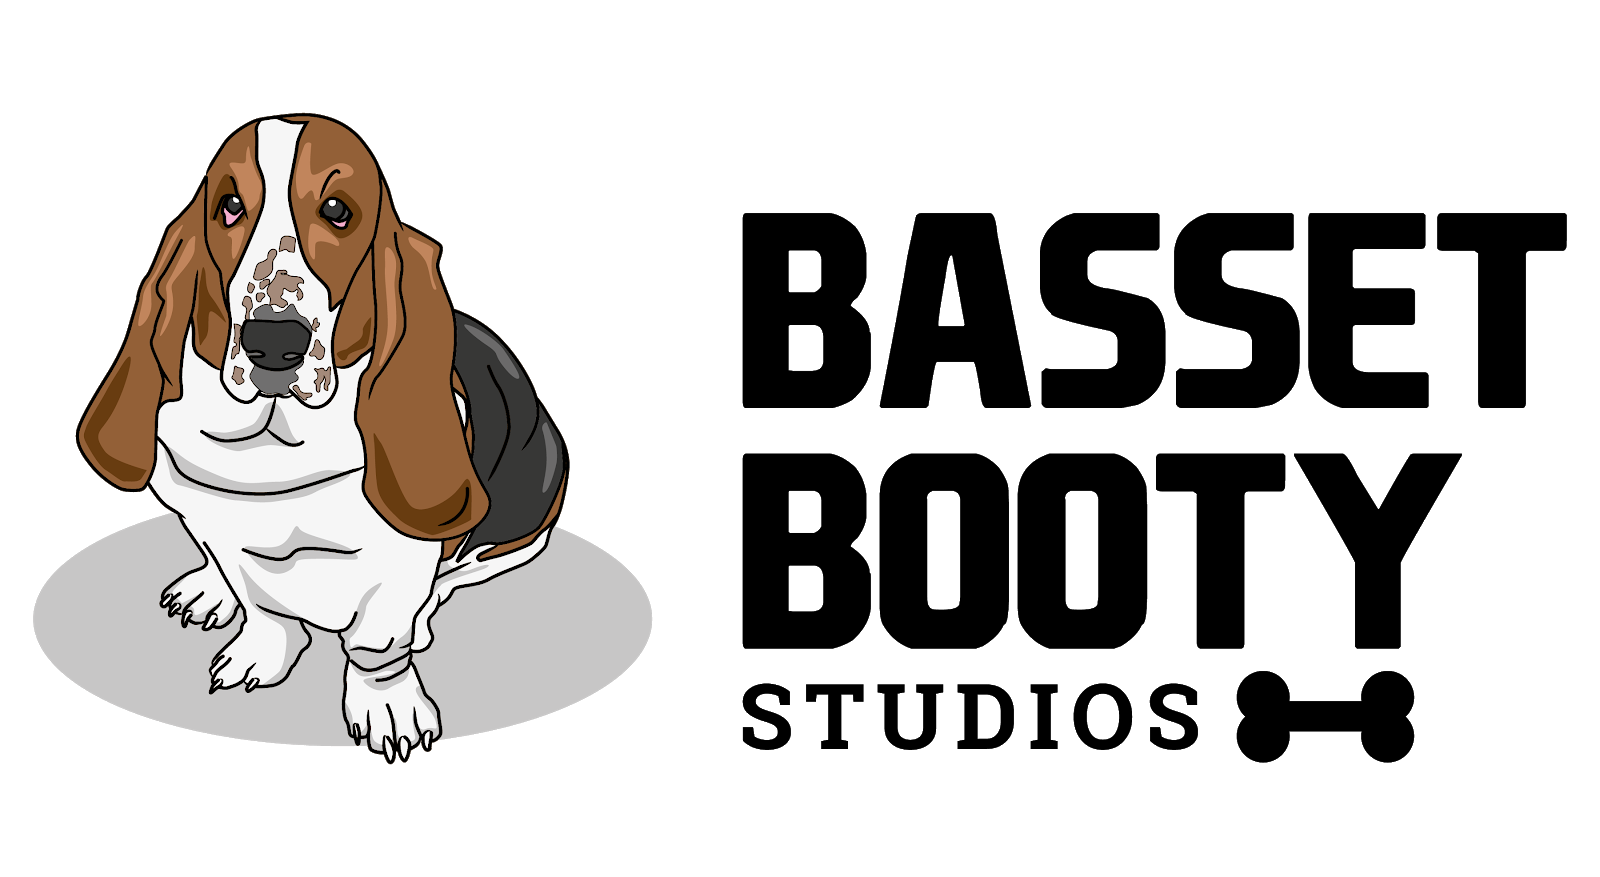 Booty transparent chunky. Best basset hound